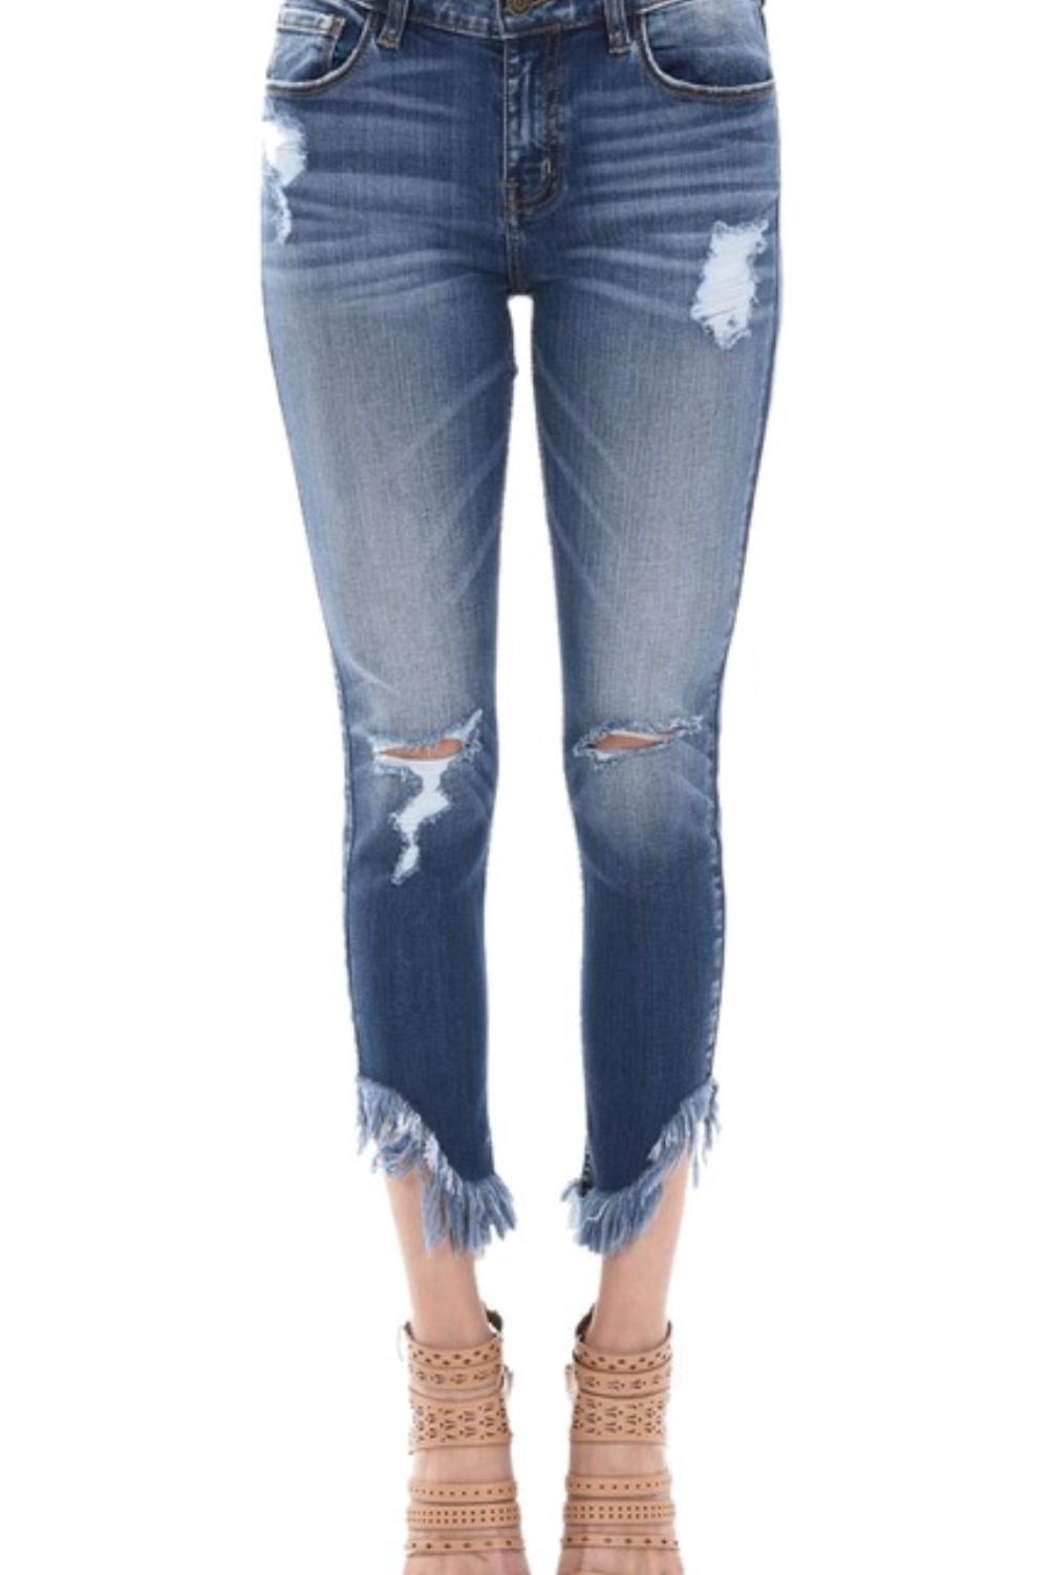 c159c3006762a1 Eunina Fringe Bottom Jeans from New York City by Foxy Lady — Shoptiques